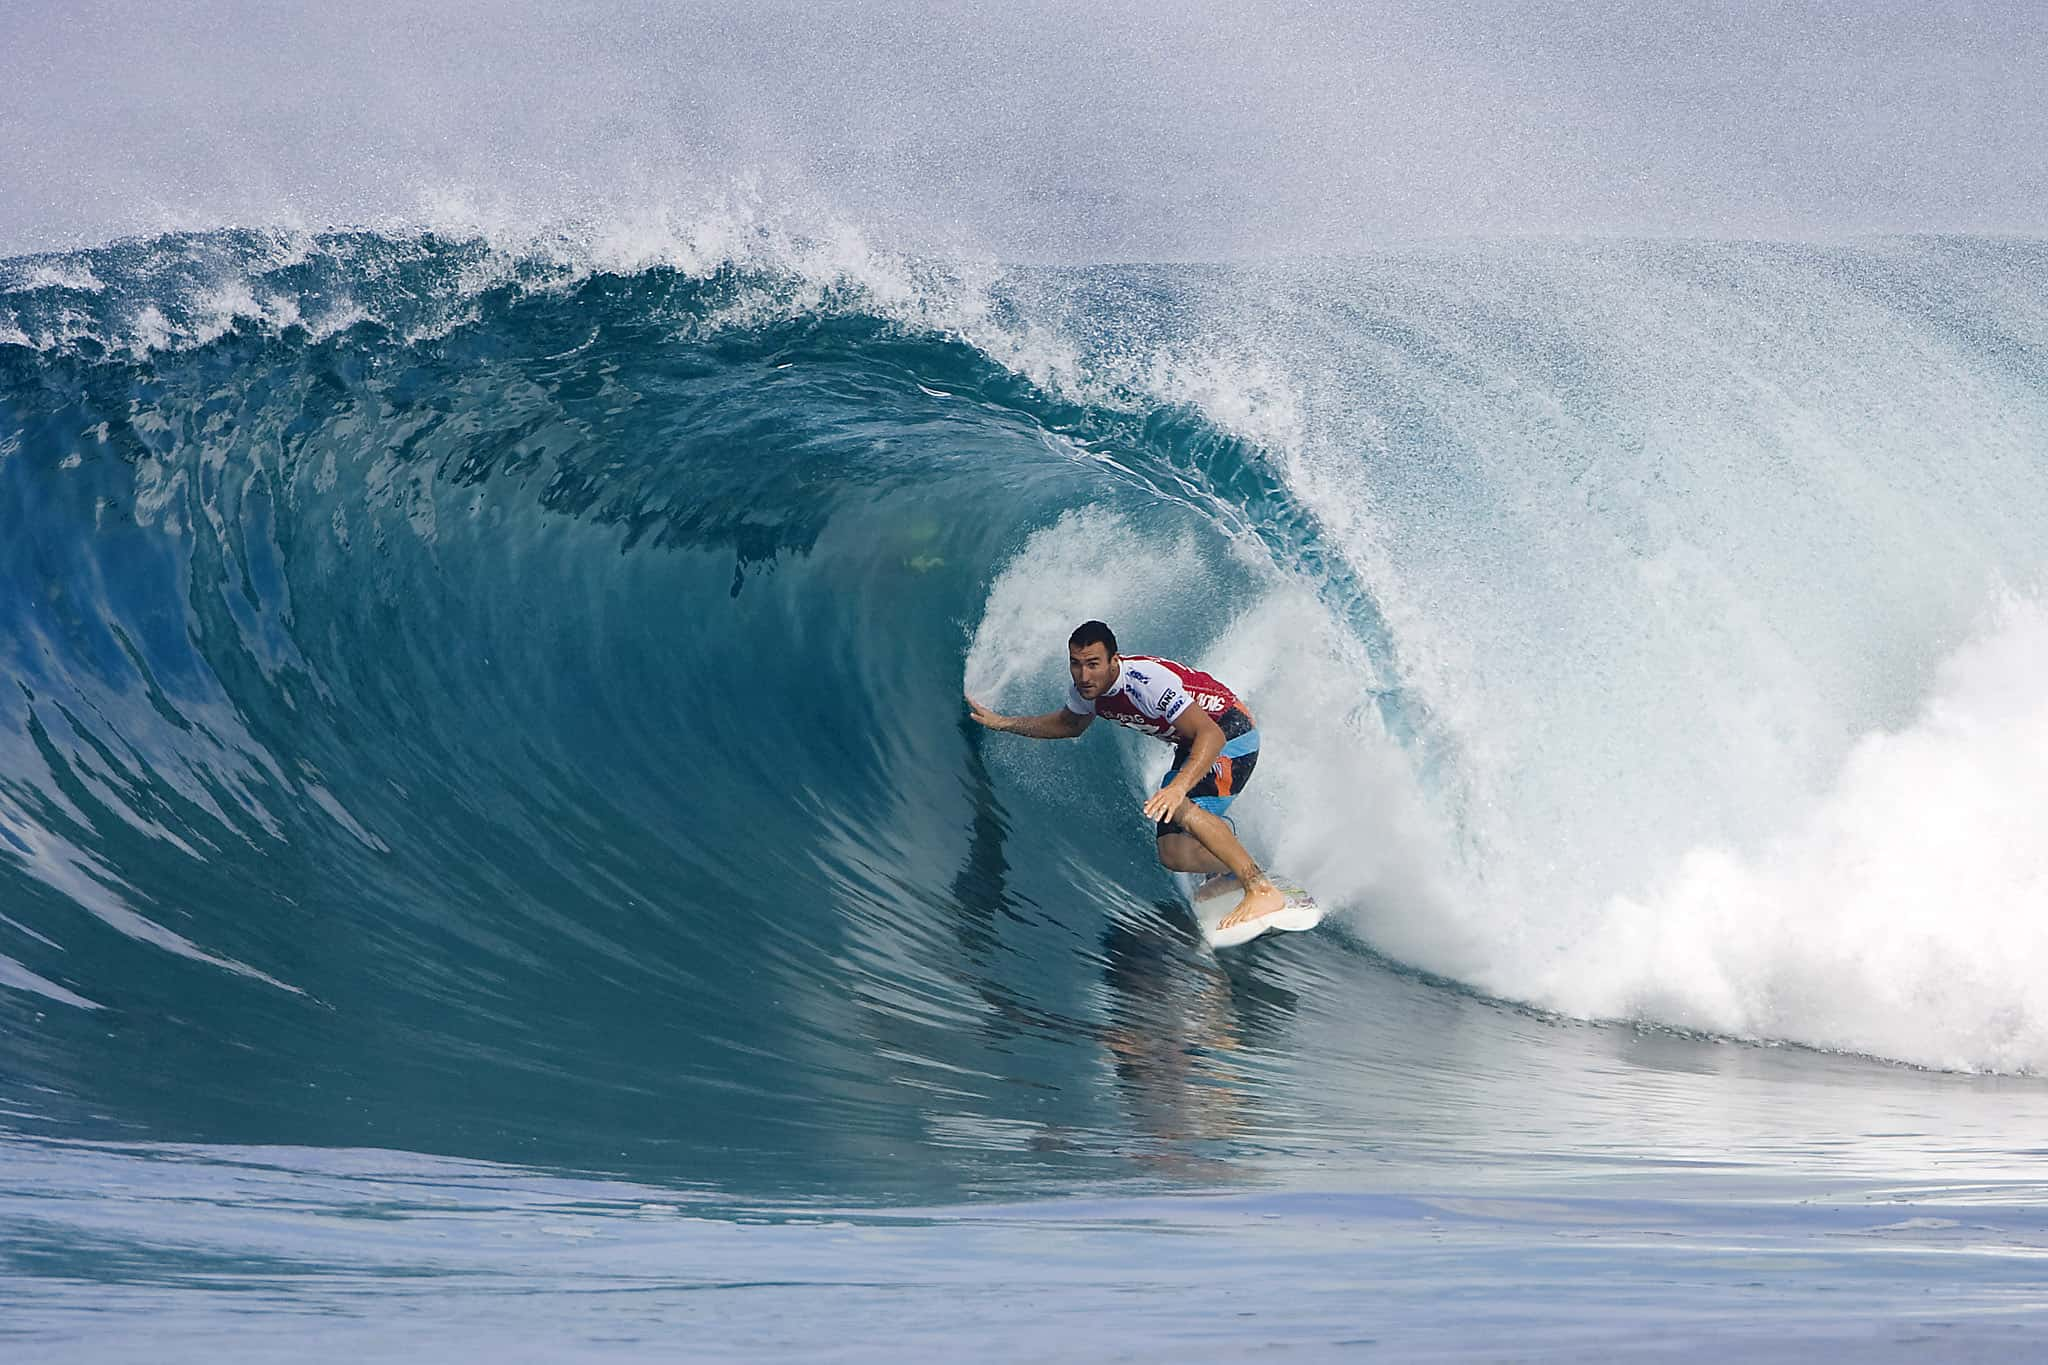 Pipeline, Oahu, Hawaii - Best Places to Surf around the World